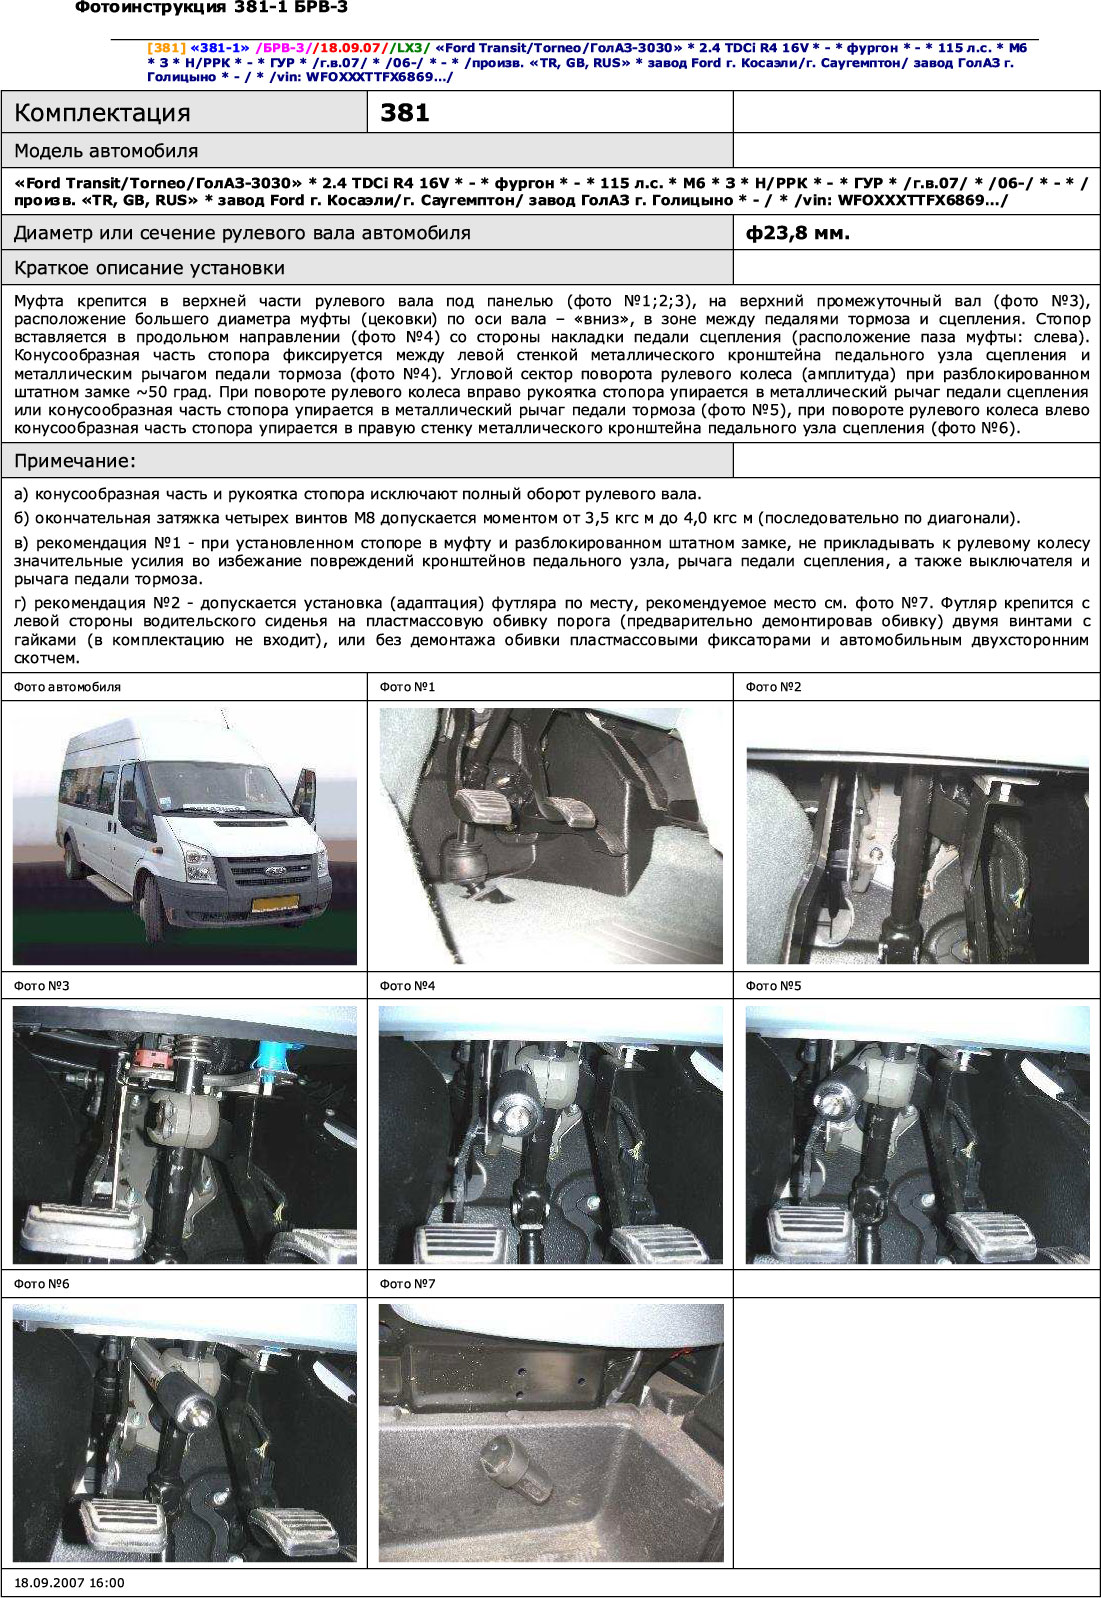 установка гарант блок люкс 381 на ford tourneo